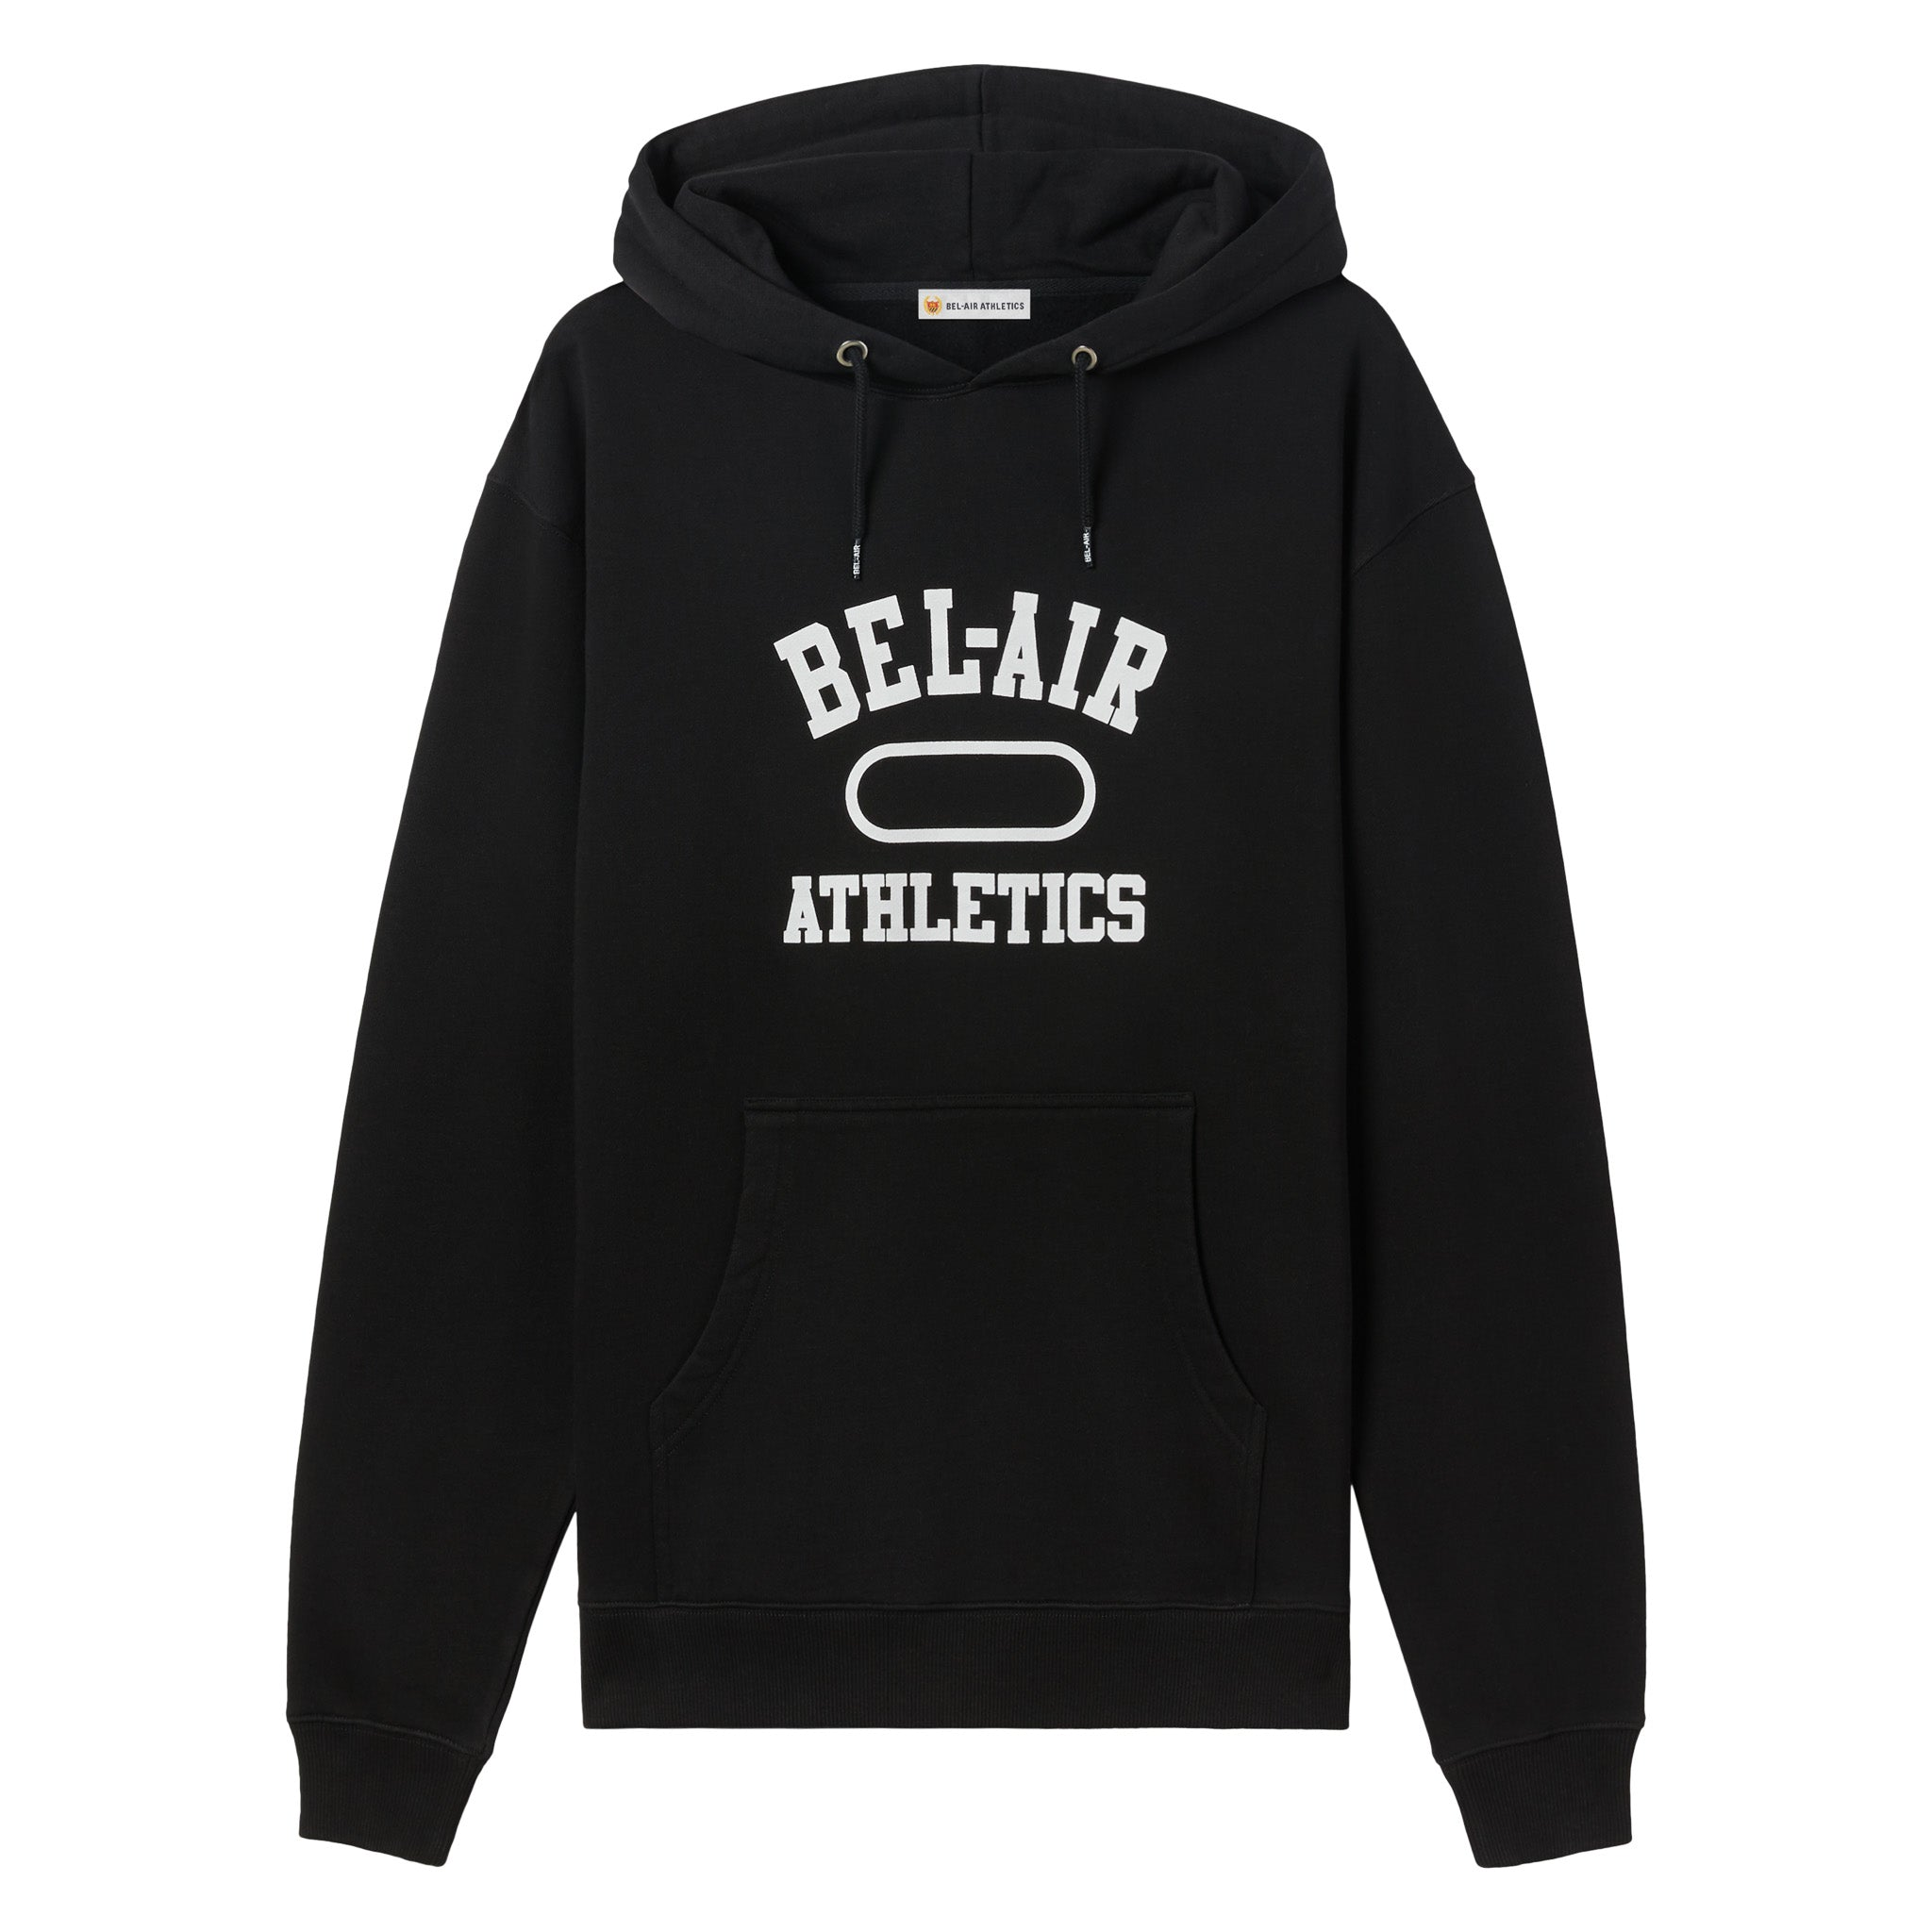 Gym logo hoodie - Vintage Black+Chalk White print